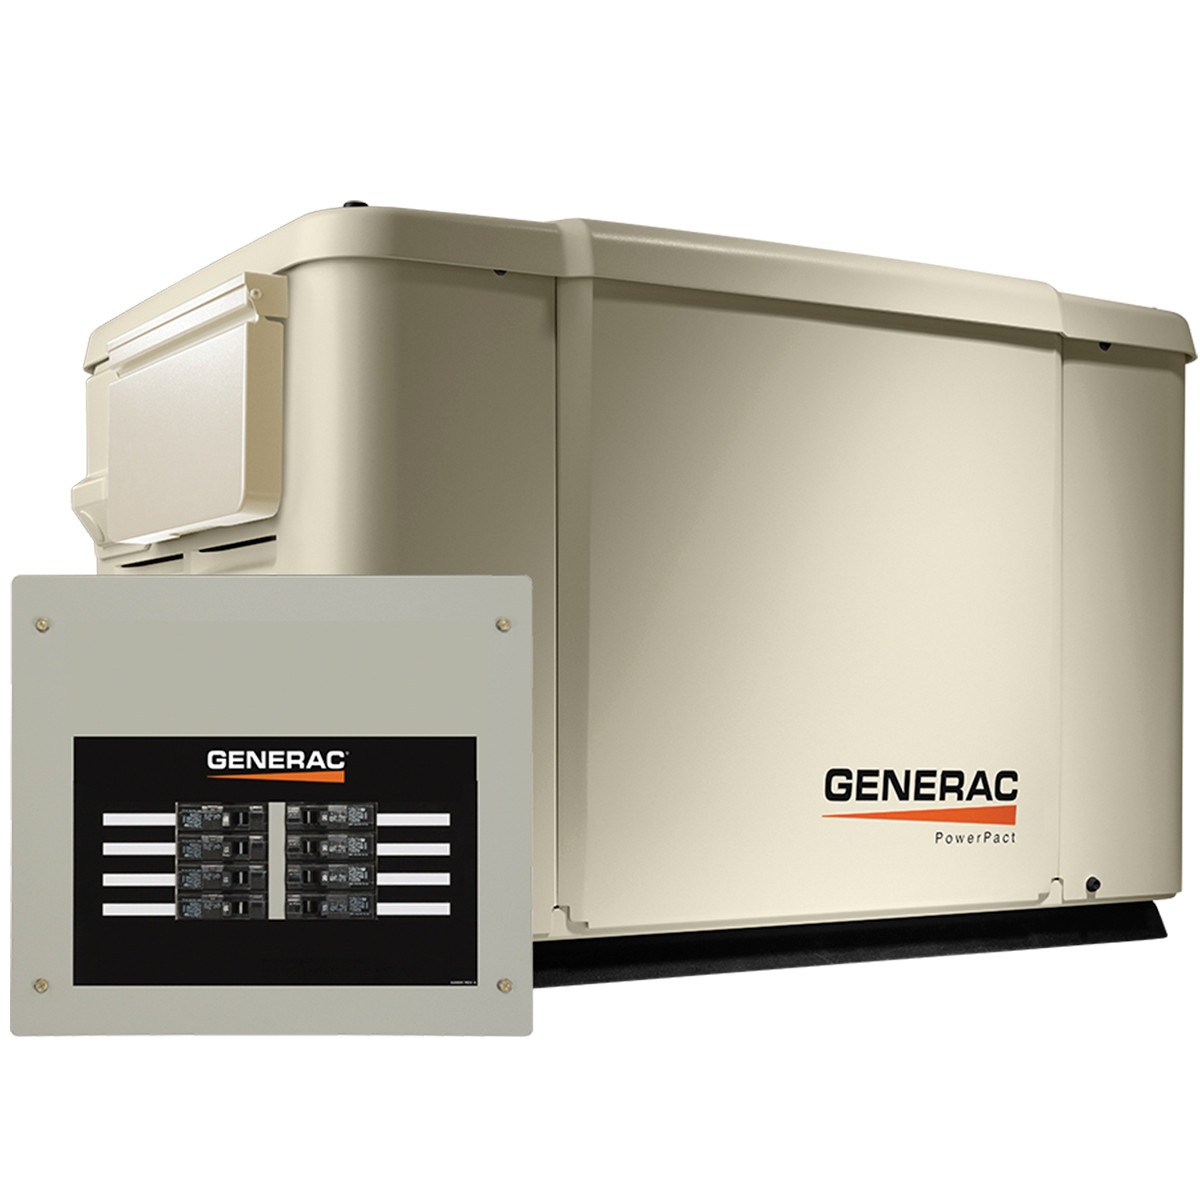 generac powerpact 6998 7 5kw generator with wi fi 50a 8 circuit transfer [ 1200 x 1200 Pixel ]